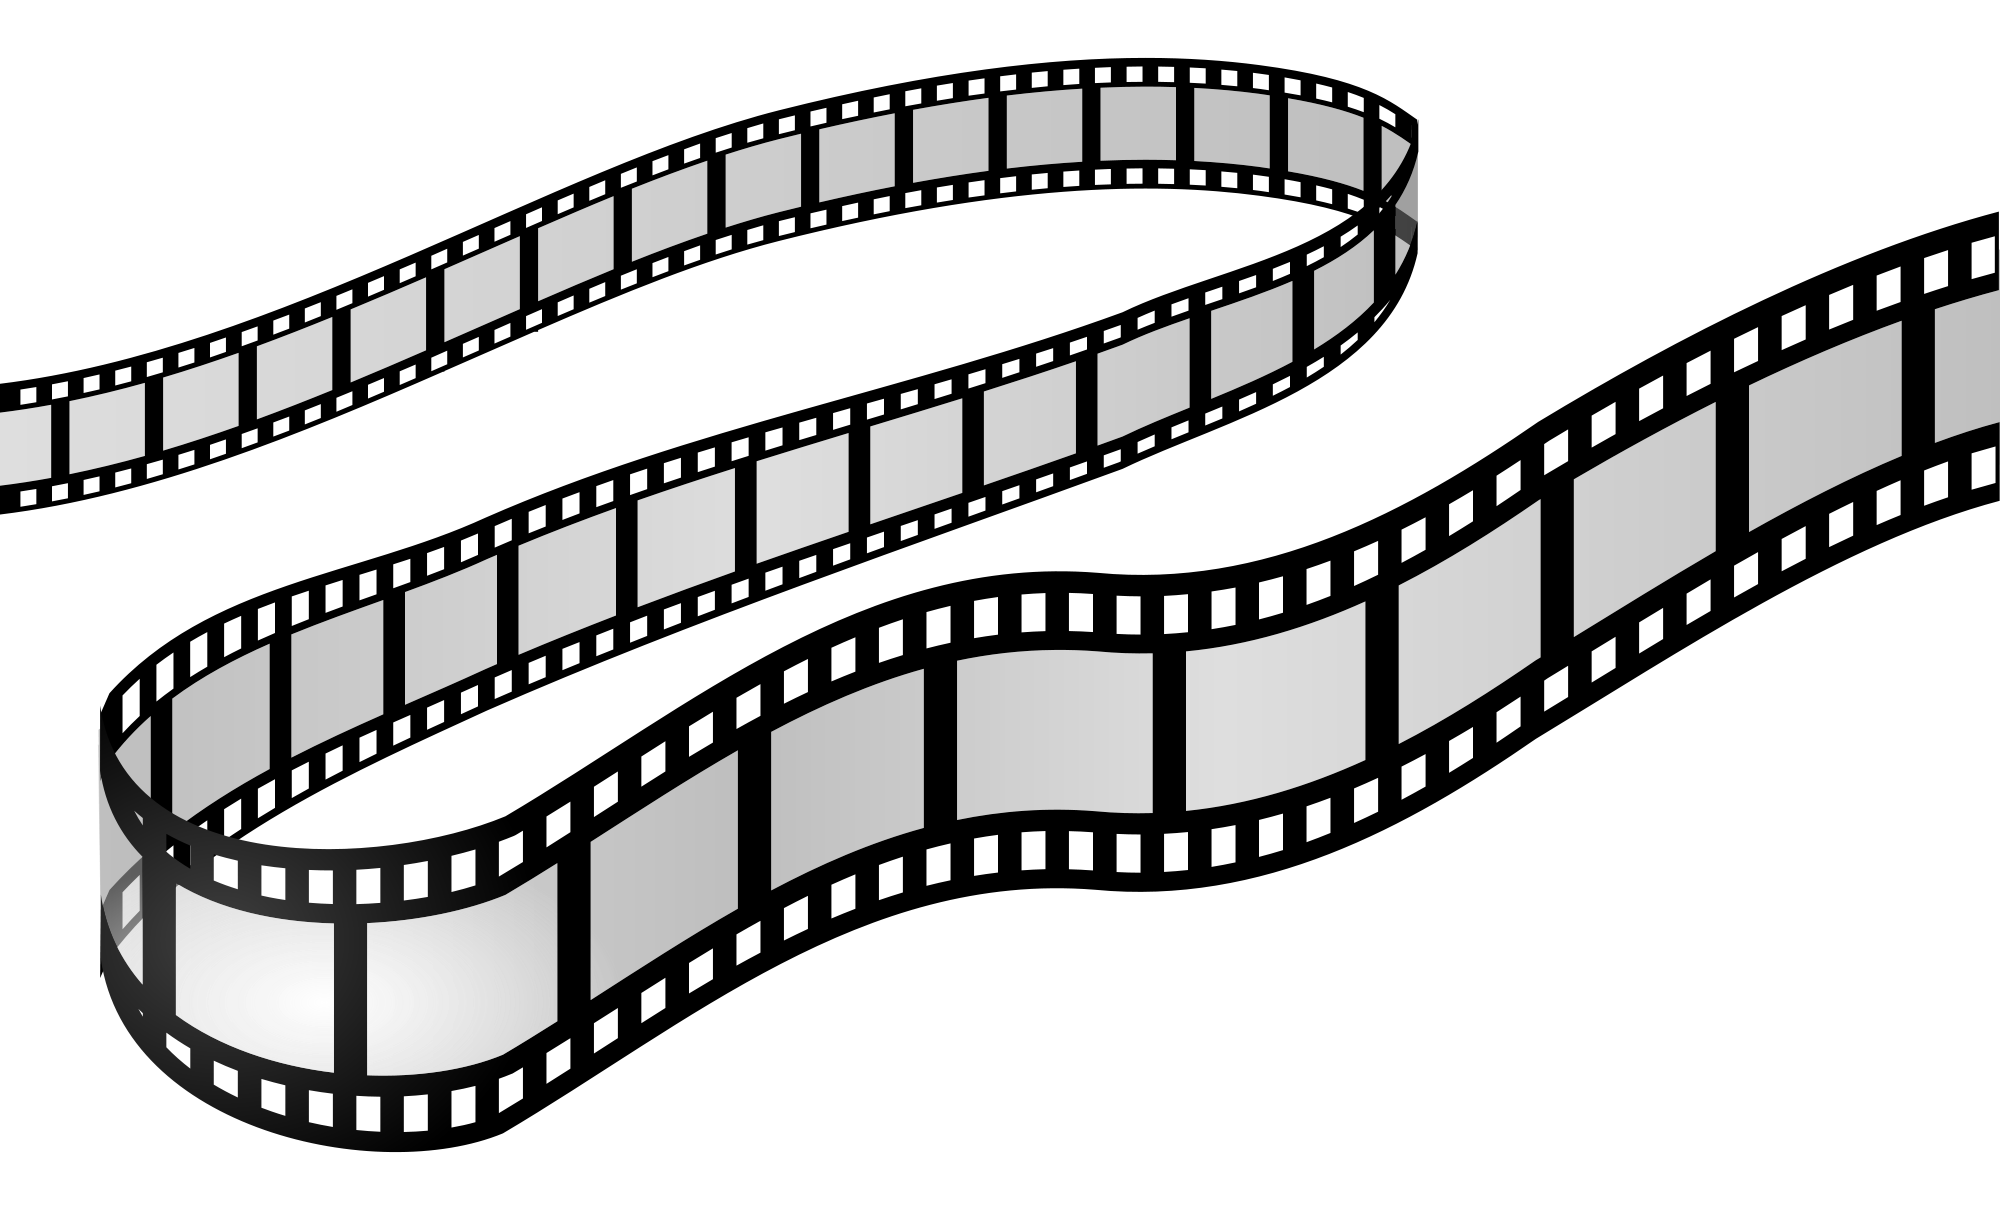 Filmrolle png 4 » PNG Image.